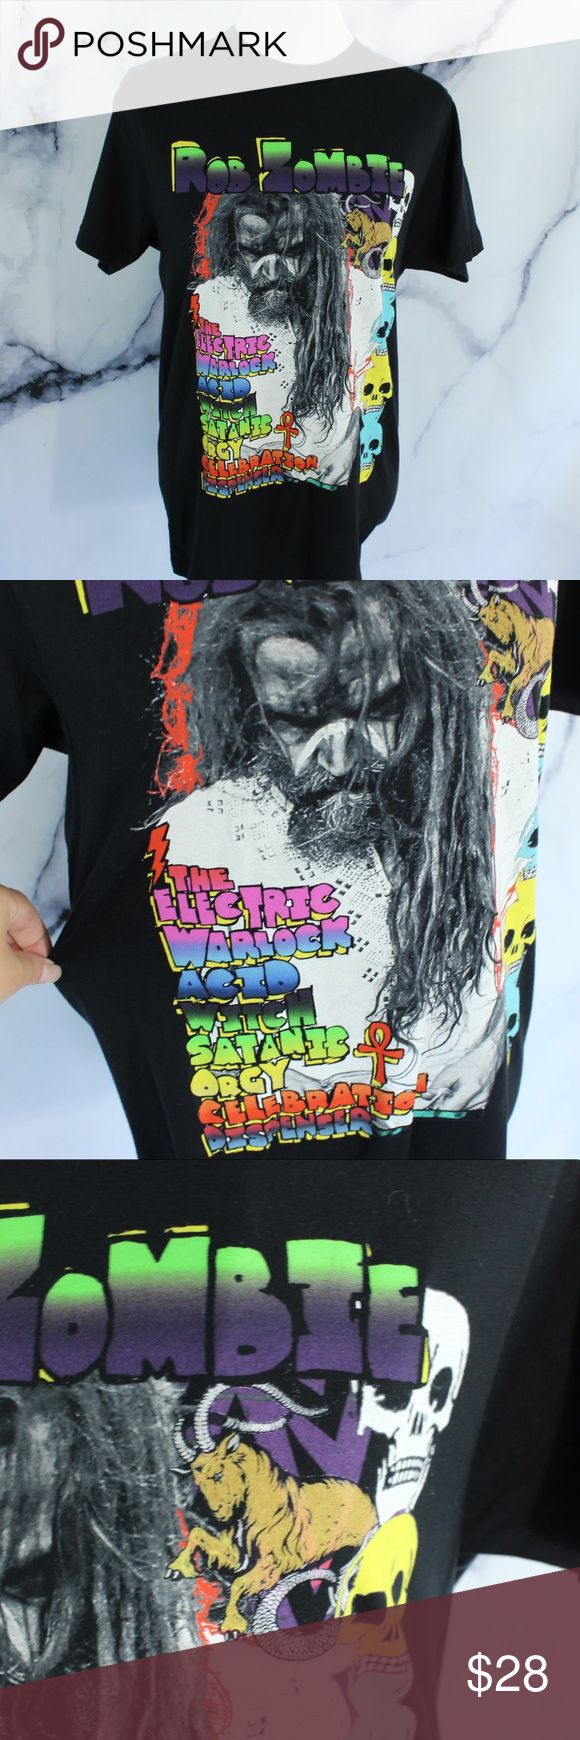 Rob Zombie Rainbow Concert T shirt M •CONDITION: pre owned. •FLAWS: No pilling, stains, or rips. •Feel free to make an offer -OR- bundle your likes for me and I'll send you an offer with an exclusive discount! Rob Zombie Shirts Tees - Short Sleeve